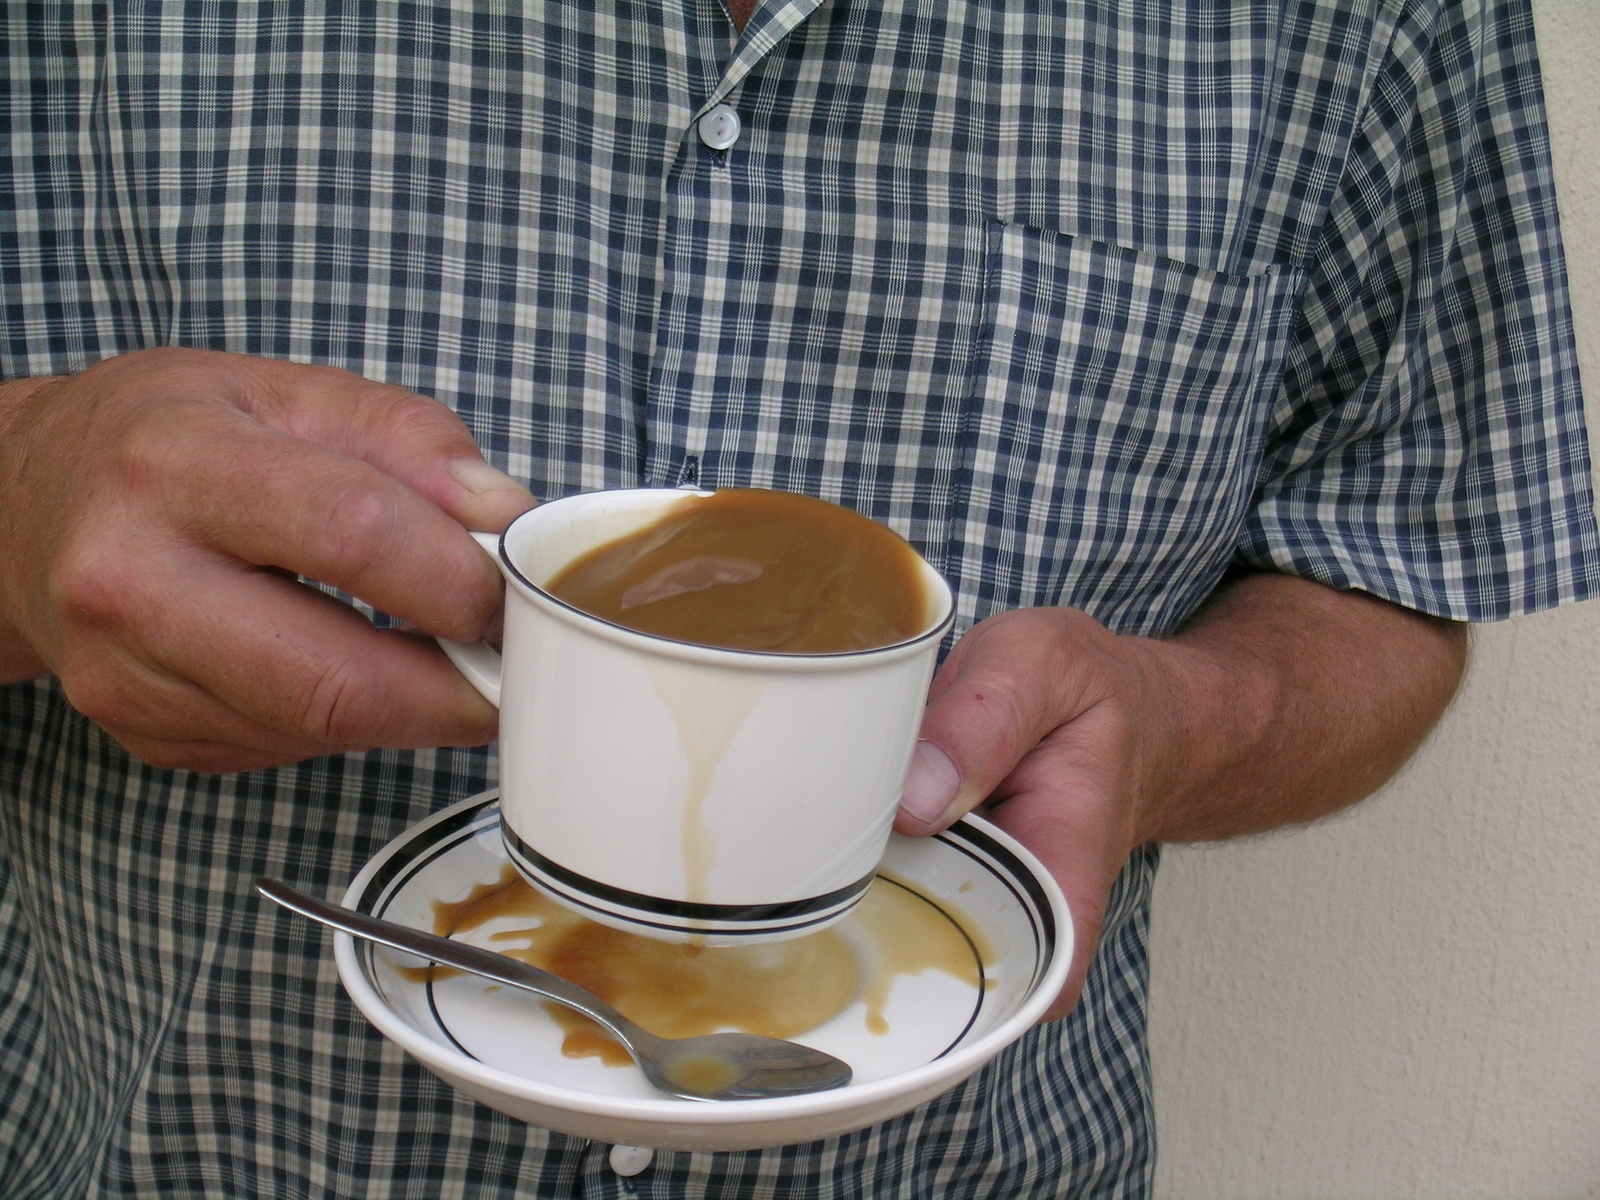 Person with Parkinson's disease spilling coffee from shaking. Motor function, hand, coffee, man.